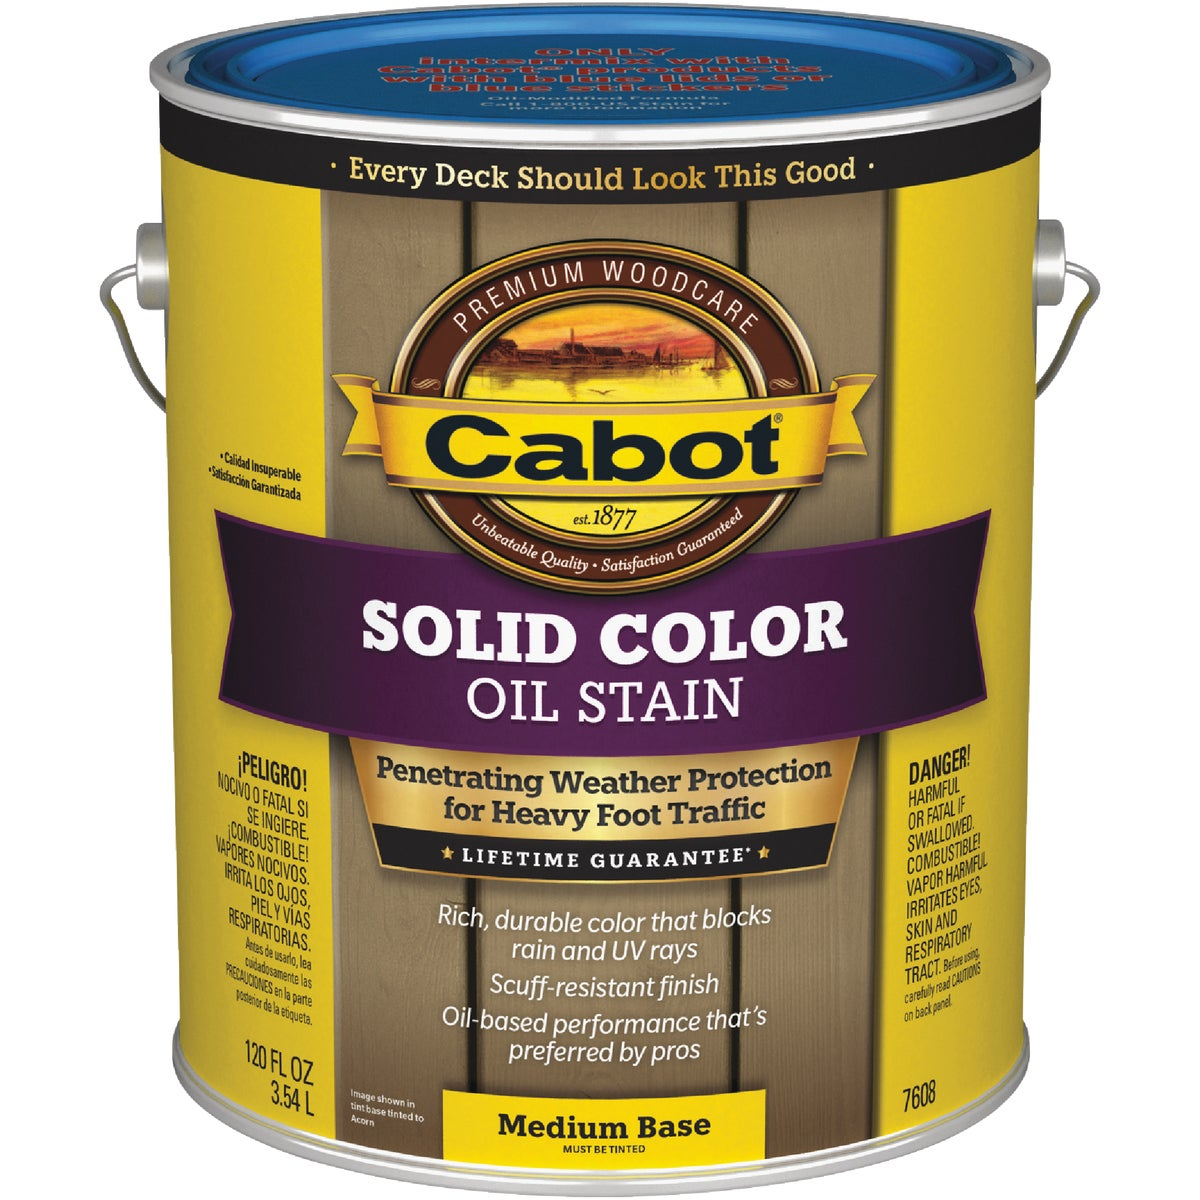 MED BS SOLID DECK STAIN - 140.0007608.007 by Valspar Corp